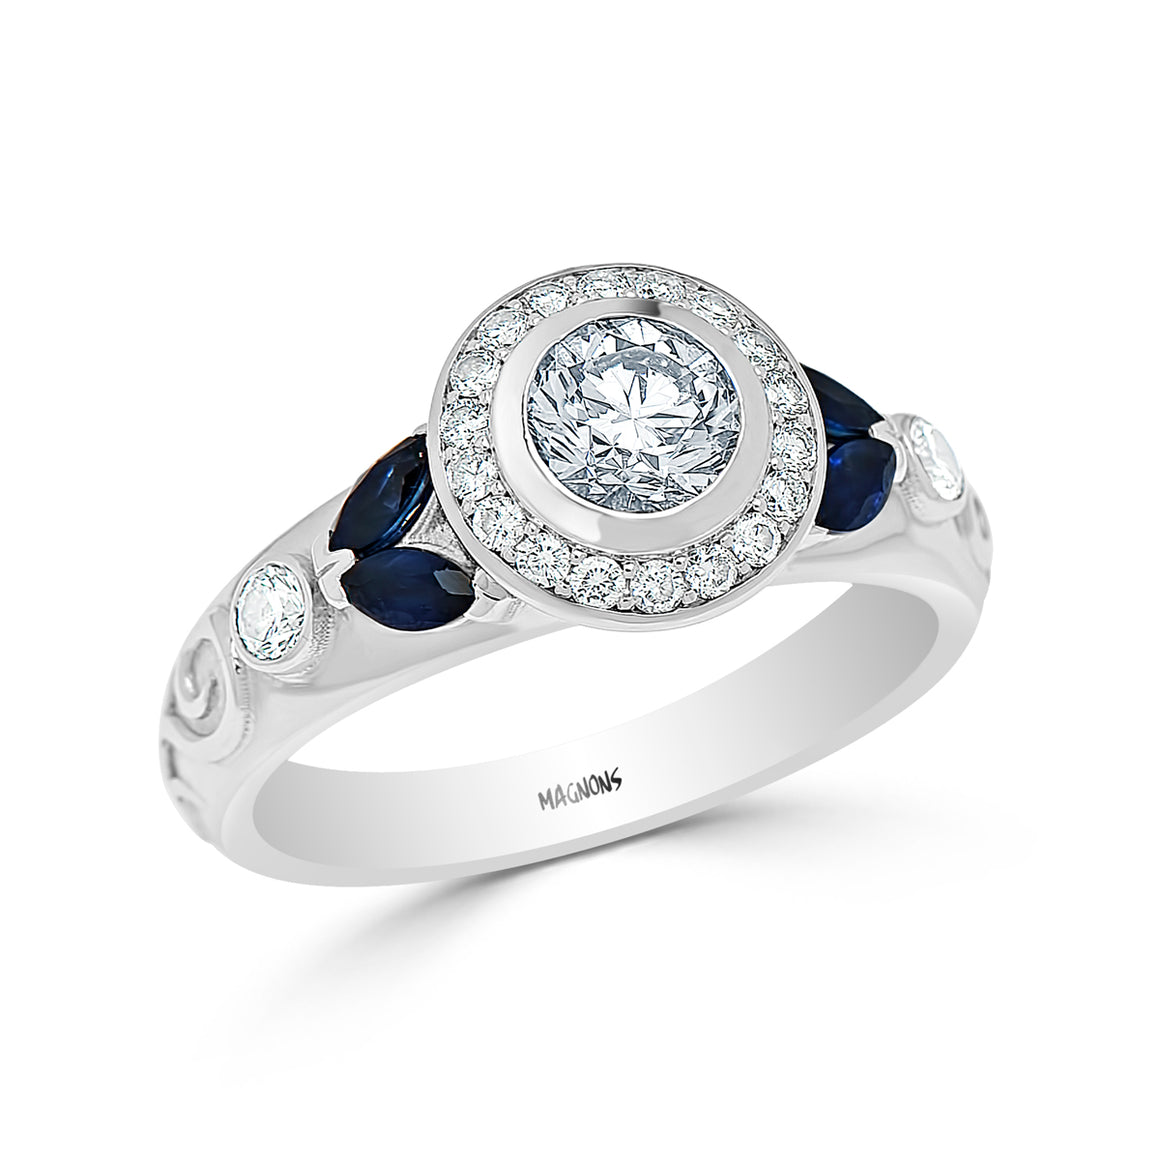 0.75CT Center Diamond halo engagement ring/ Genuine Diamond & Natural Sapphire engagement ring 18k white gold